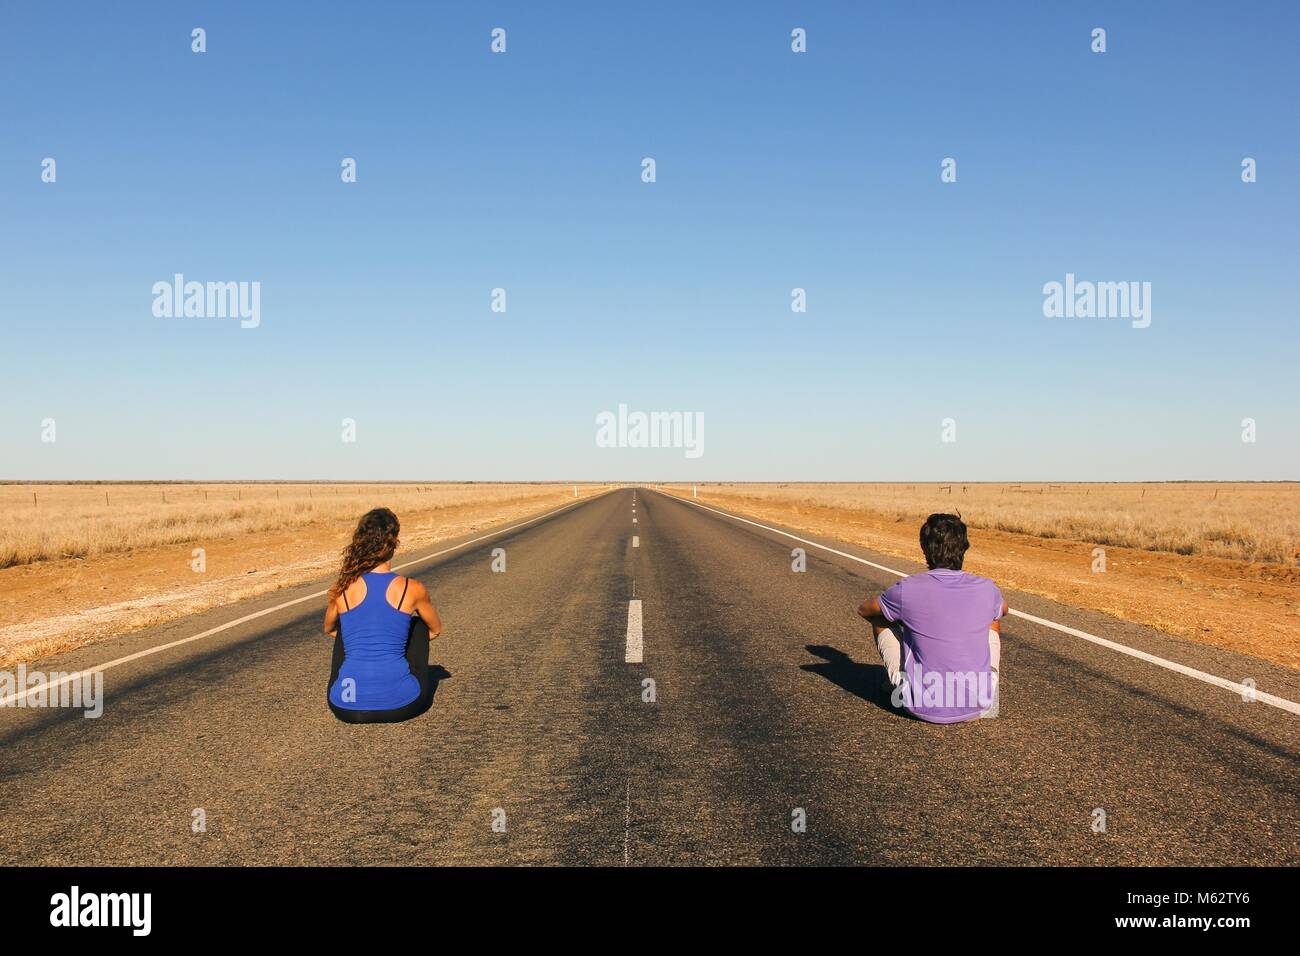 Young couple from behind sitting down on an endless straight empty road in the middle of nowhere in Outback Australia. - Stock Image